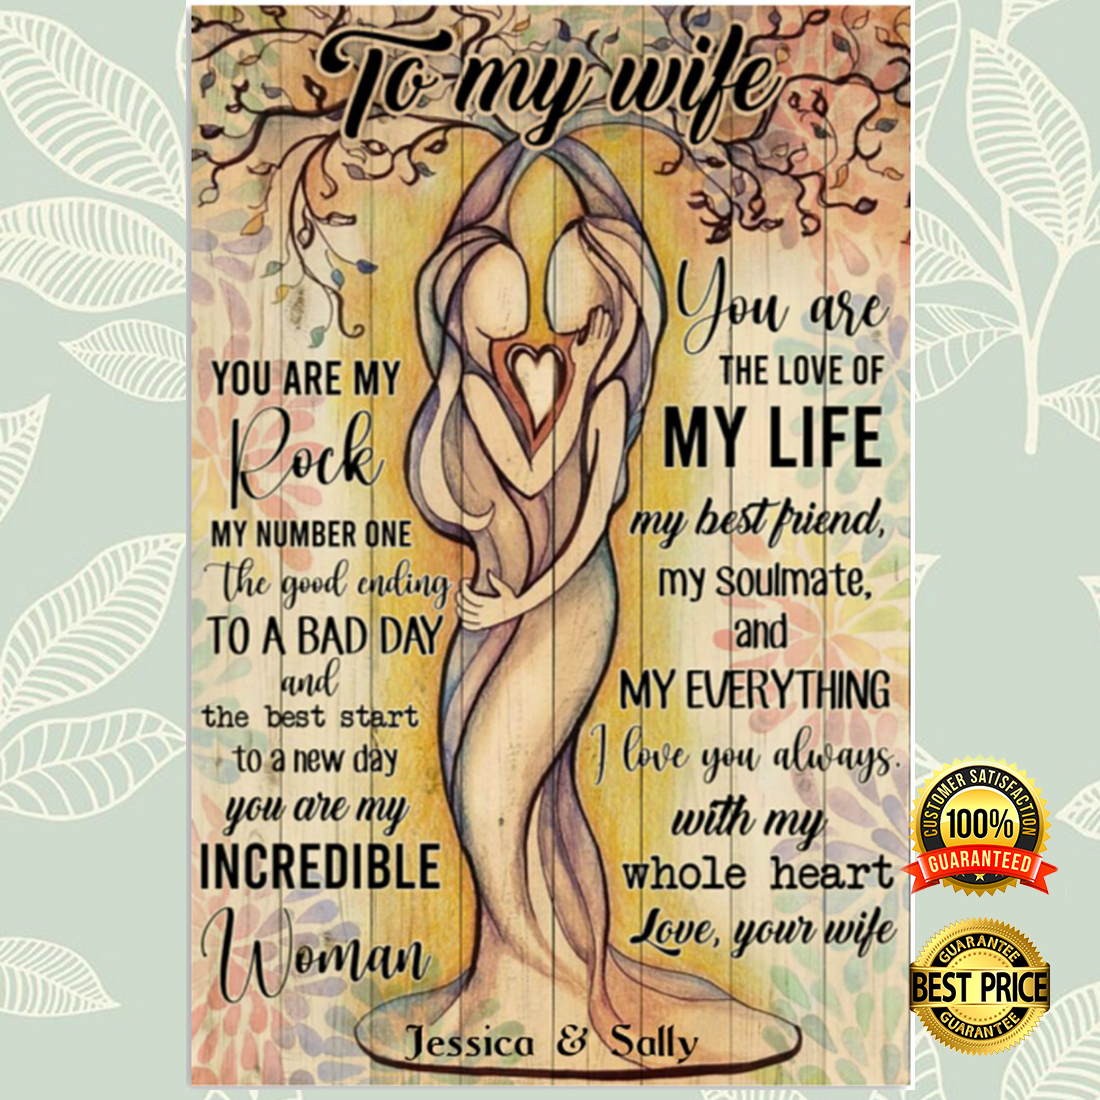 [New] Personalized to my wife you are my rock my number one poster